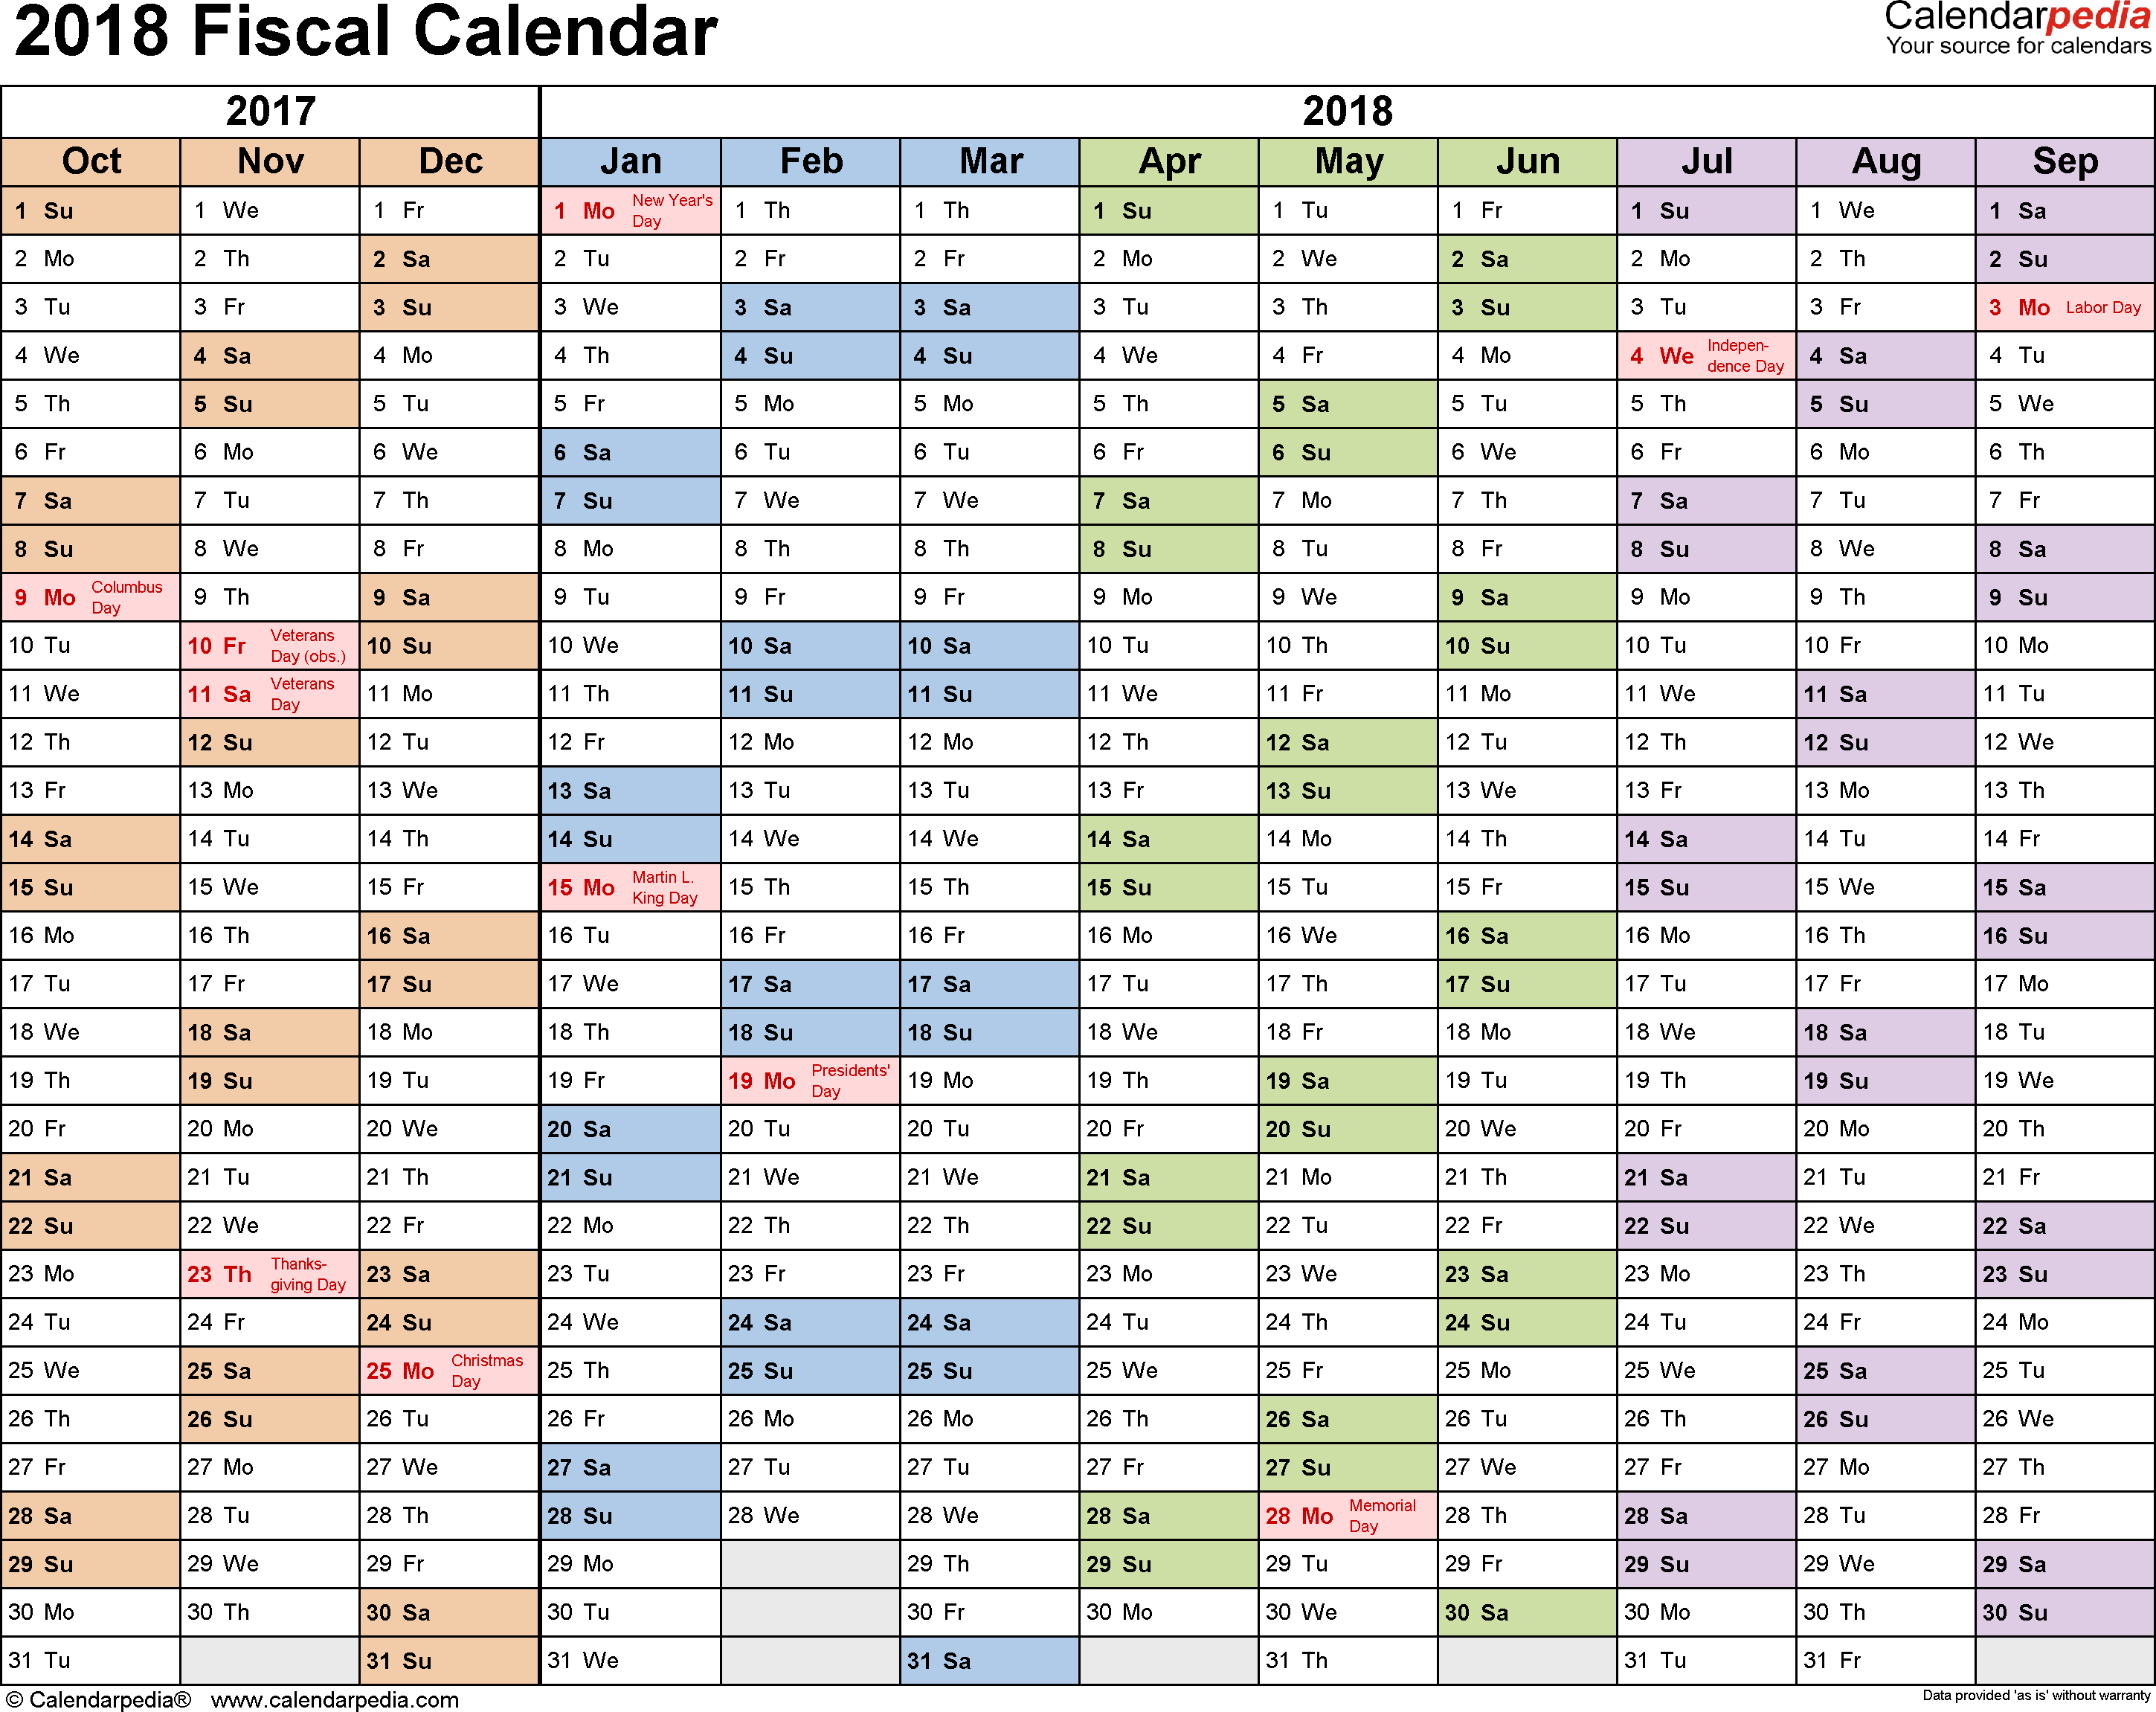 Fiscal calendars 2018 as free printable excel templates template 1 fiscal year calendar 2018 for excel landscape orientation months horizontally pronofoot35fo Gallery